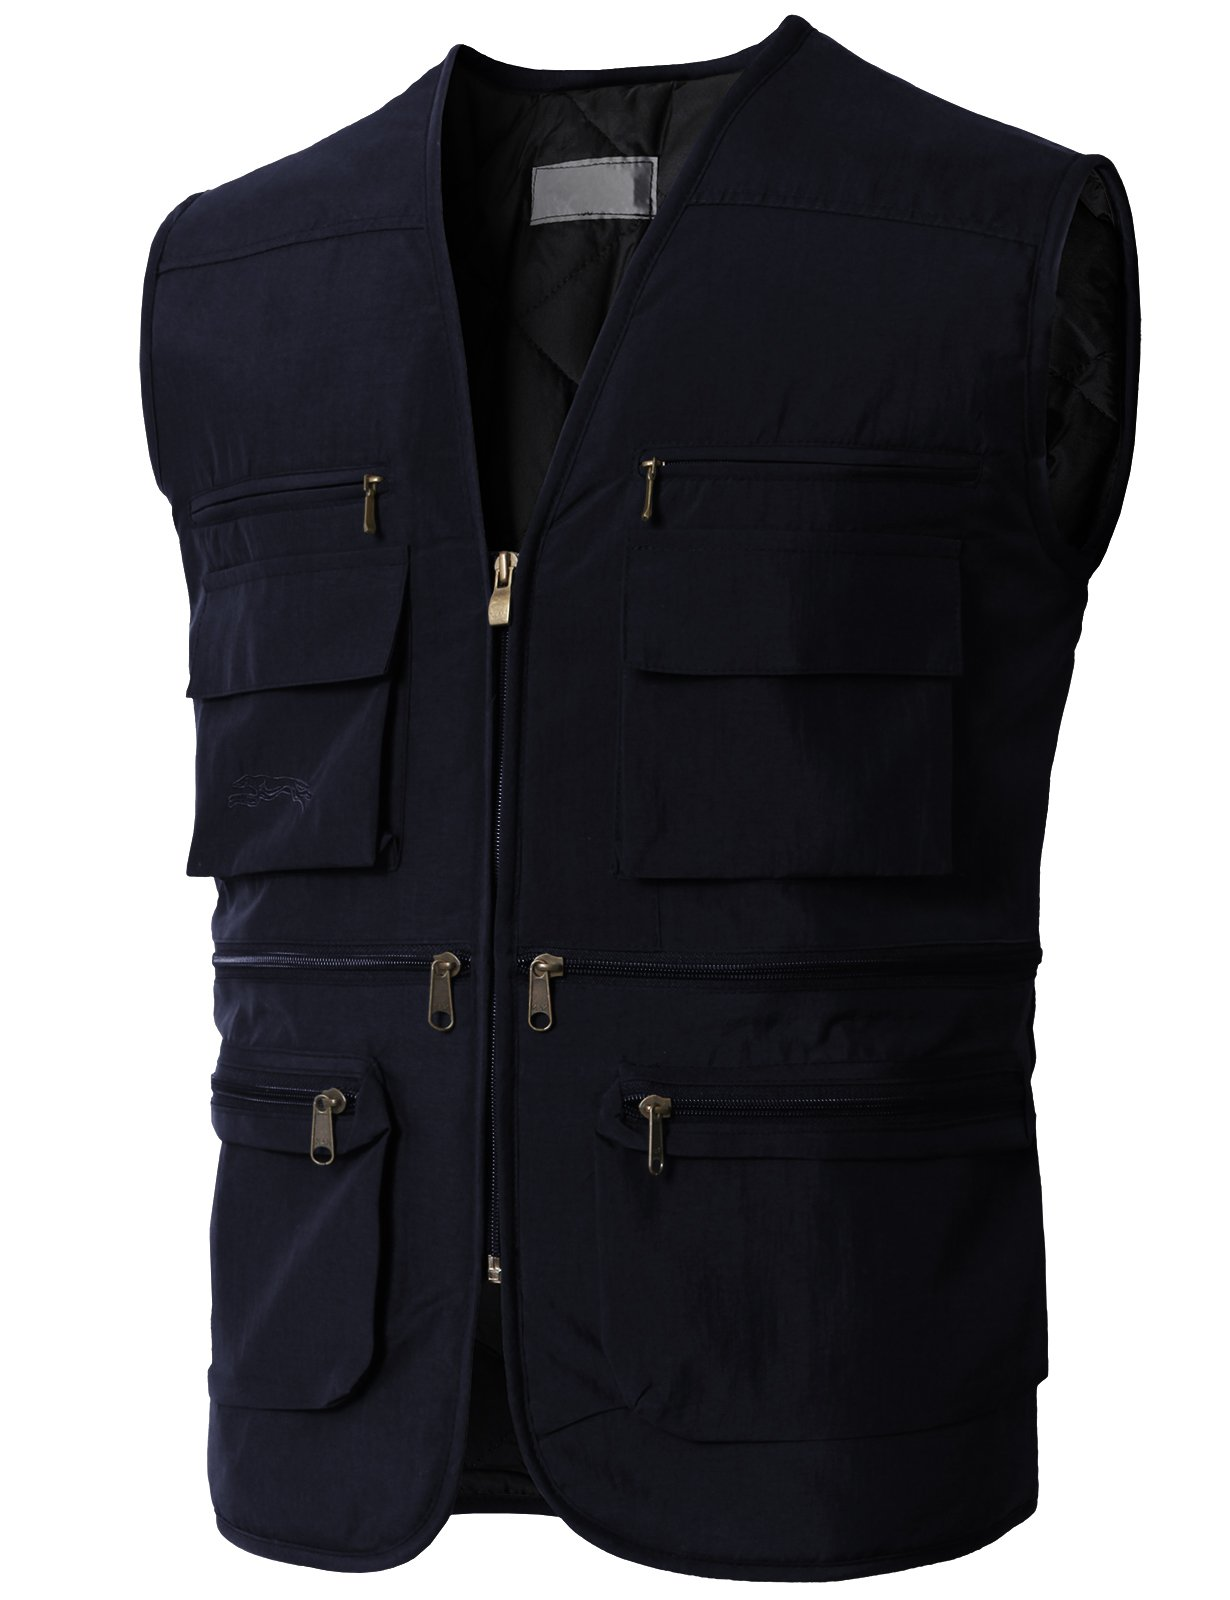 H2H Mens Casual Multi Pockets Travel Fishing Hunting Work Outdoor Photo Vest Camera Navy US L/Asia XL (KMOV0167)